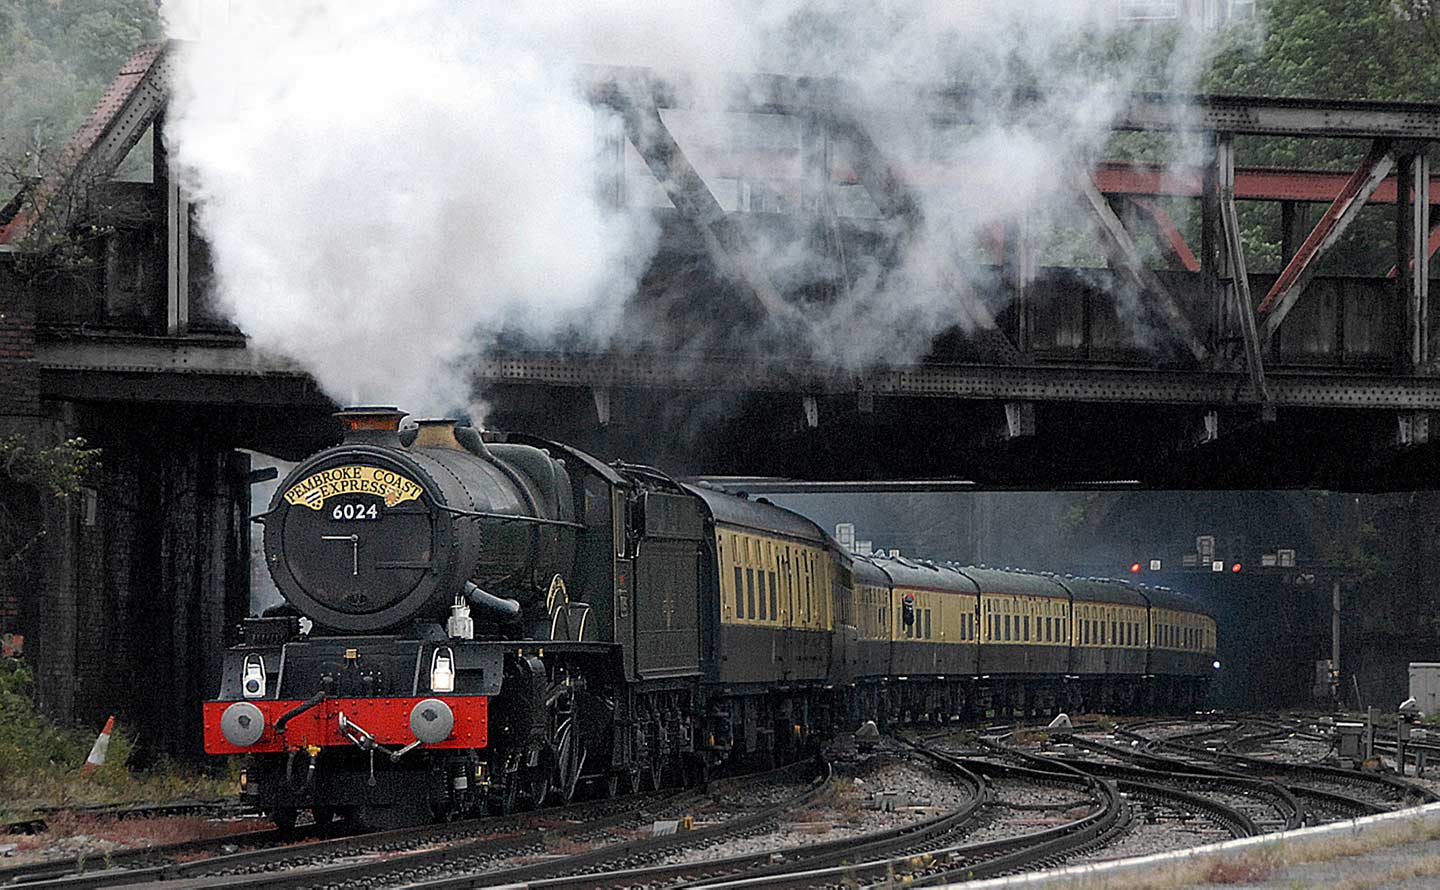 No. 6024 arrives at a damp Newport, 27 May 2007. © Robin Coombes